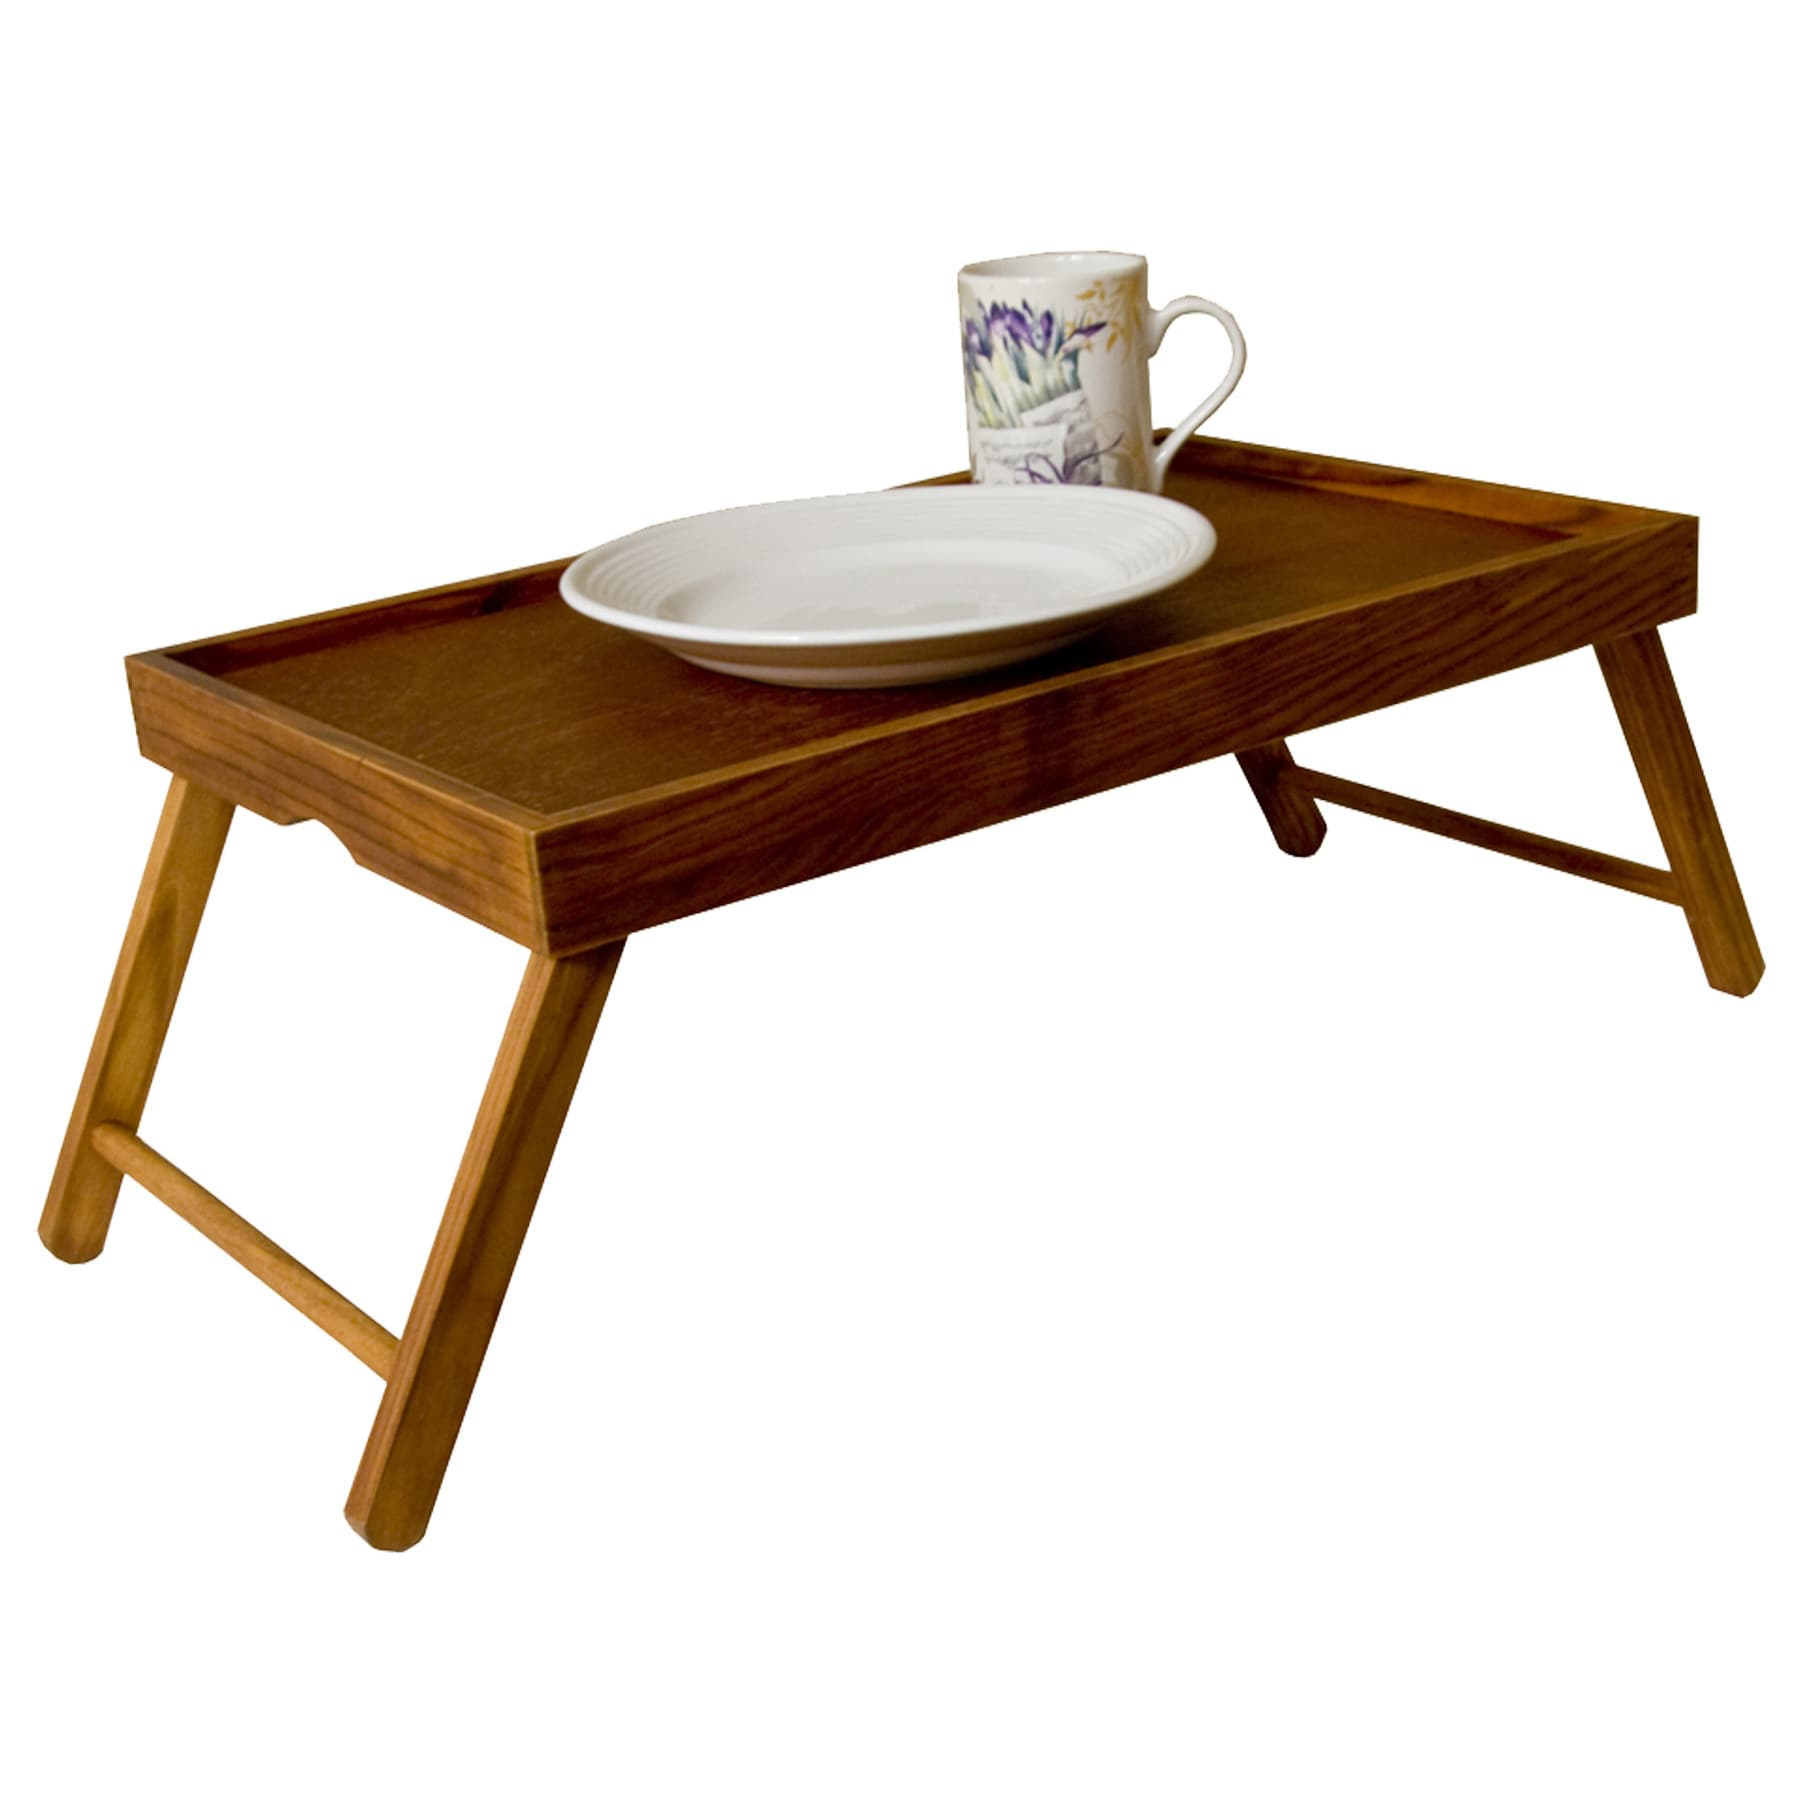 Home Basics Pine Bed Tray with Folding Legs (Pine), Green...